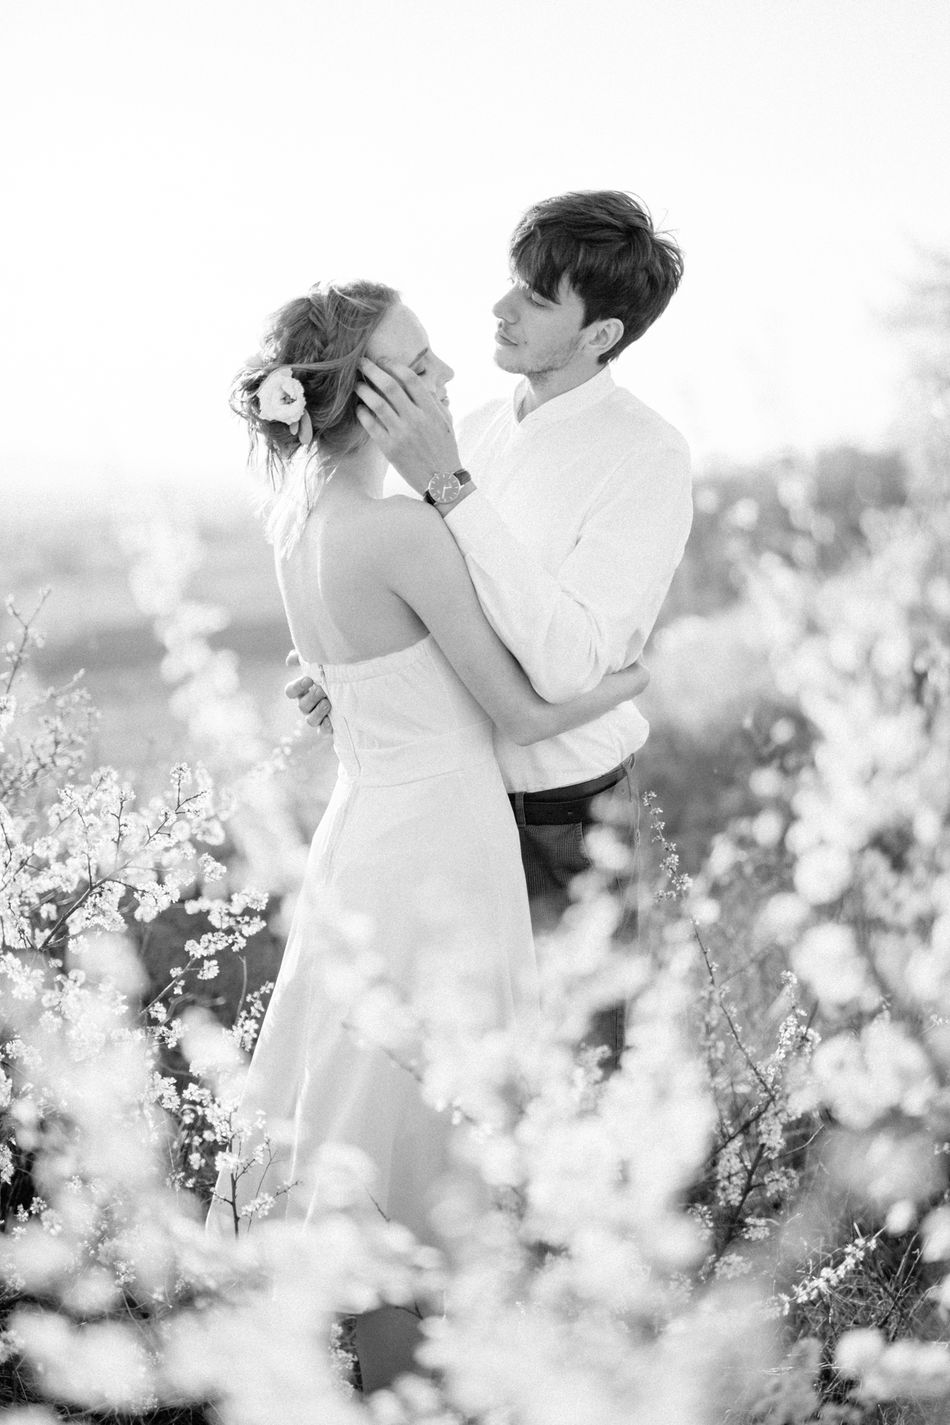 Portrait Wedding Two People Beautiful People Romance Happiness Smiling Togetherness Couple - Relationship